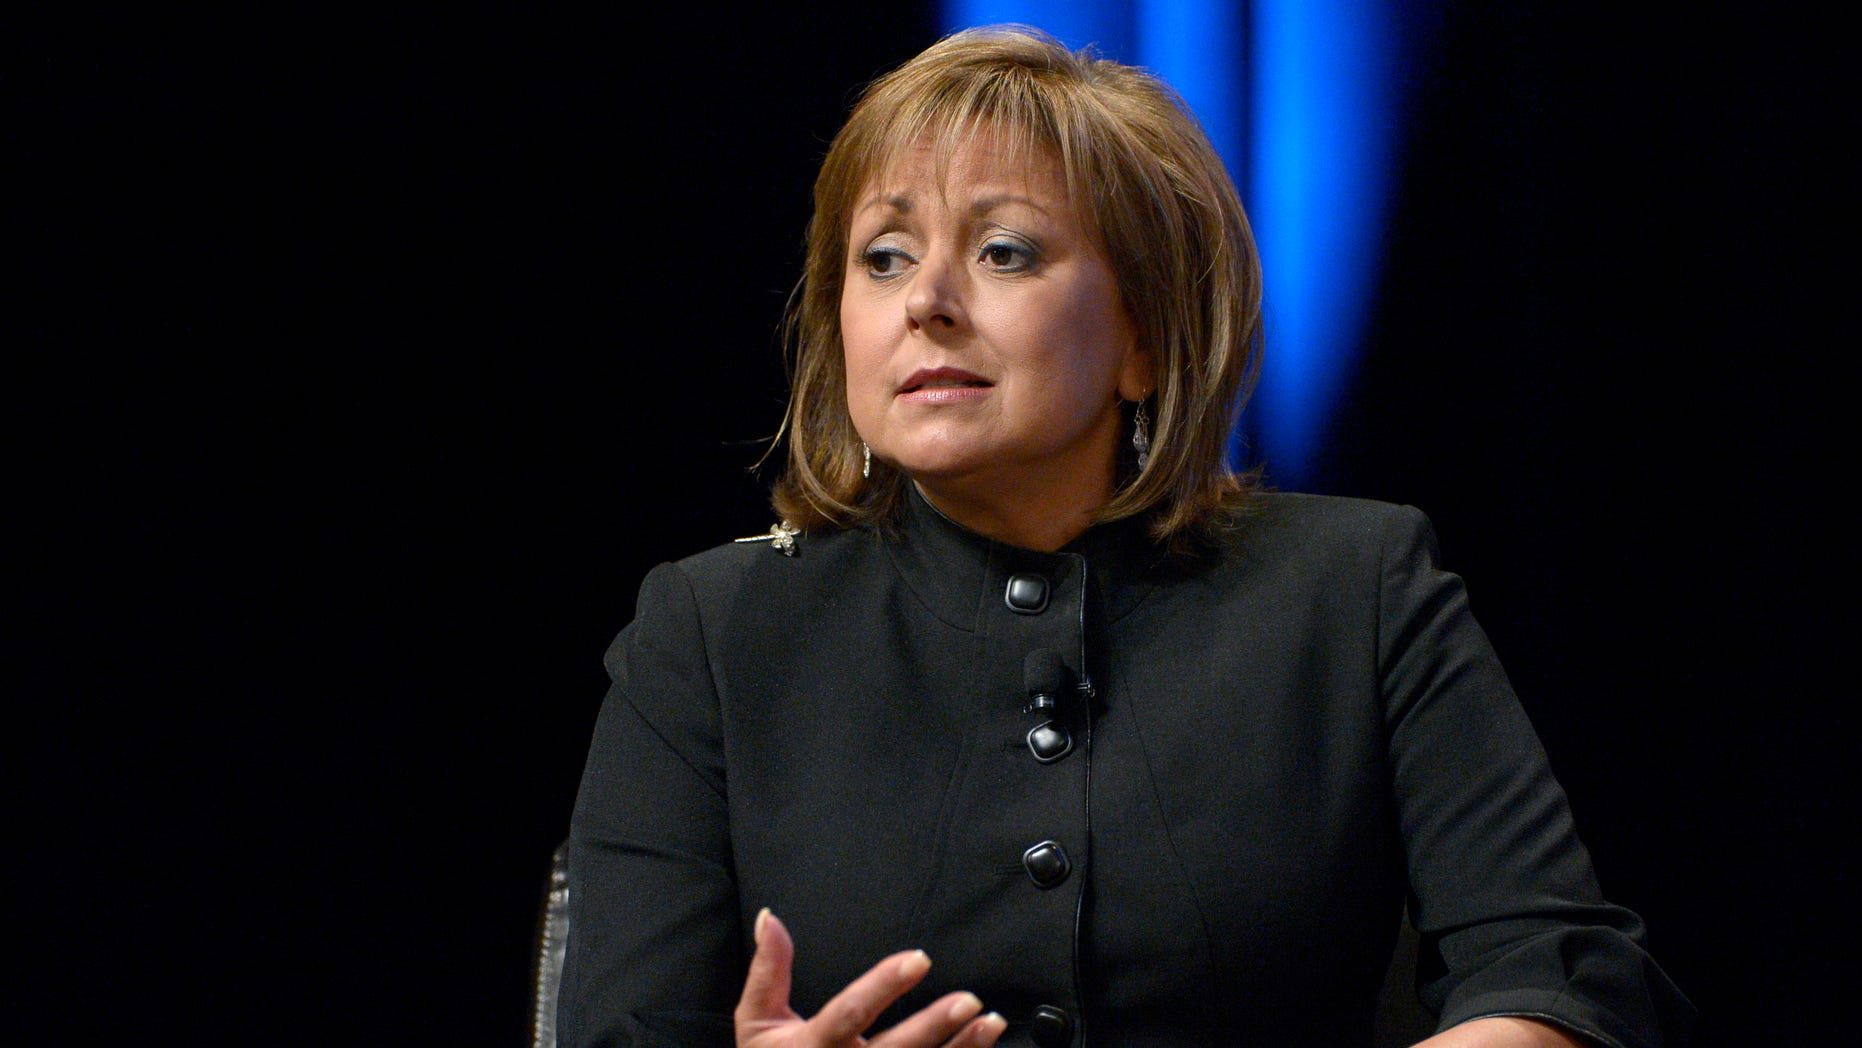 FILE - In this Aug. 22, 2013, file photo, Republican New Mexico Gov. Susana Martinez answers a question during a panel discussion at the Wal-Mart U.S. Manufacturing Summit in Orlando, Fla. Martinez and Democratic challenger Gary King will square off Monday, Oct. 6, 2014, in a televised Spanish-language debate aimed at the state's Hispanic voters. (AP Photo/Phelan M. Ebenhack, File)